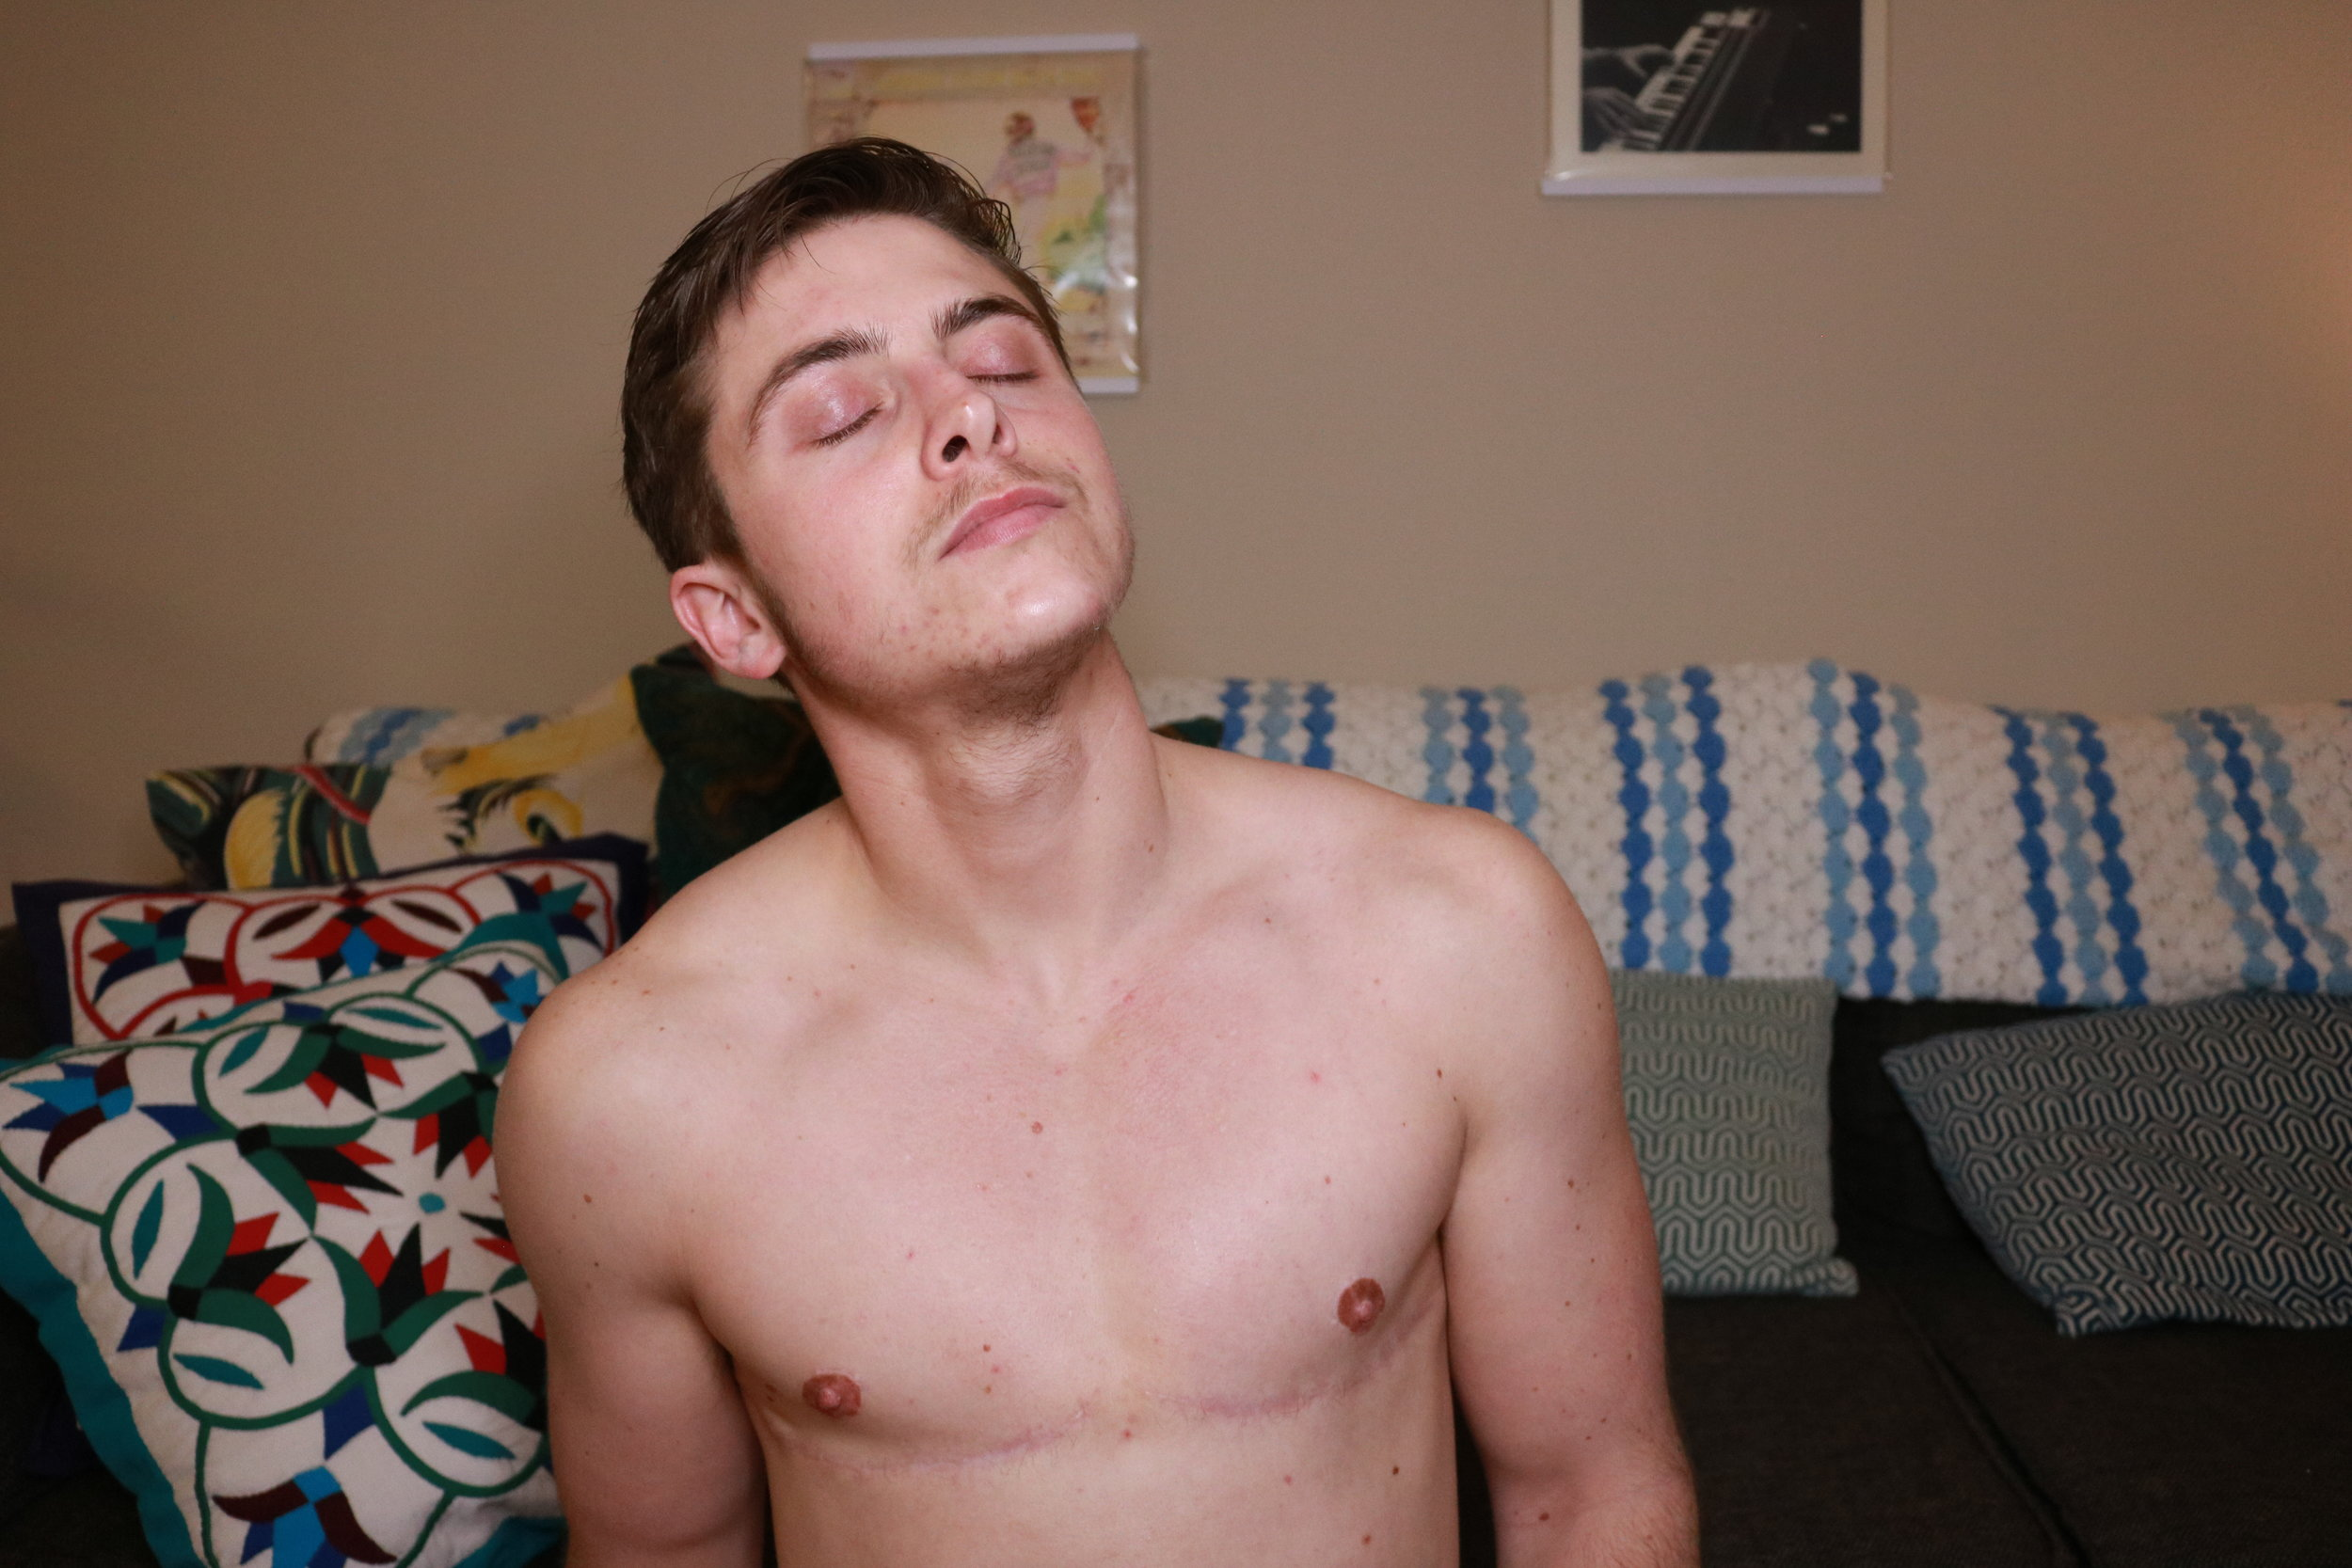 Photo taken by Thomas, in his living room, March 2019. Image Description: Thomas sits shirtless on the floor of his living room in front of his couch covered in colorful pillows and blankets. Album covers hang on the wall behind him as he closes his eyes, stretches his neck, and breathes in a deep breath. His top surgery scars trace thin, pink smiles across his chest.